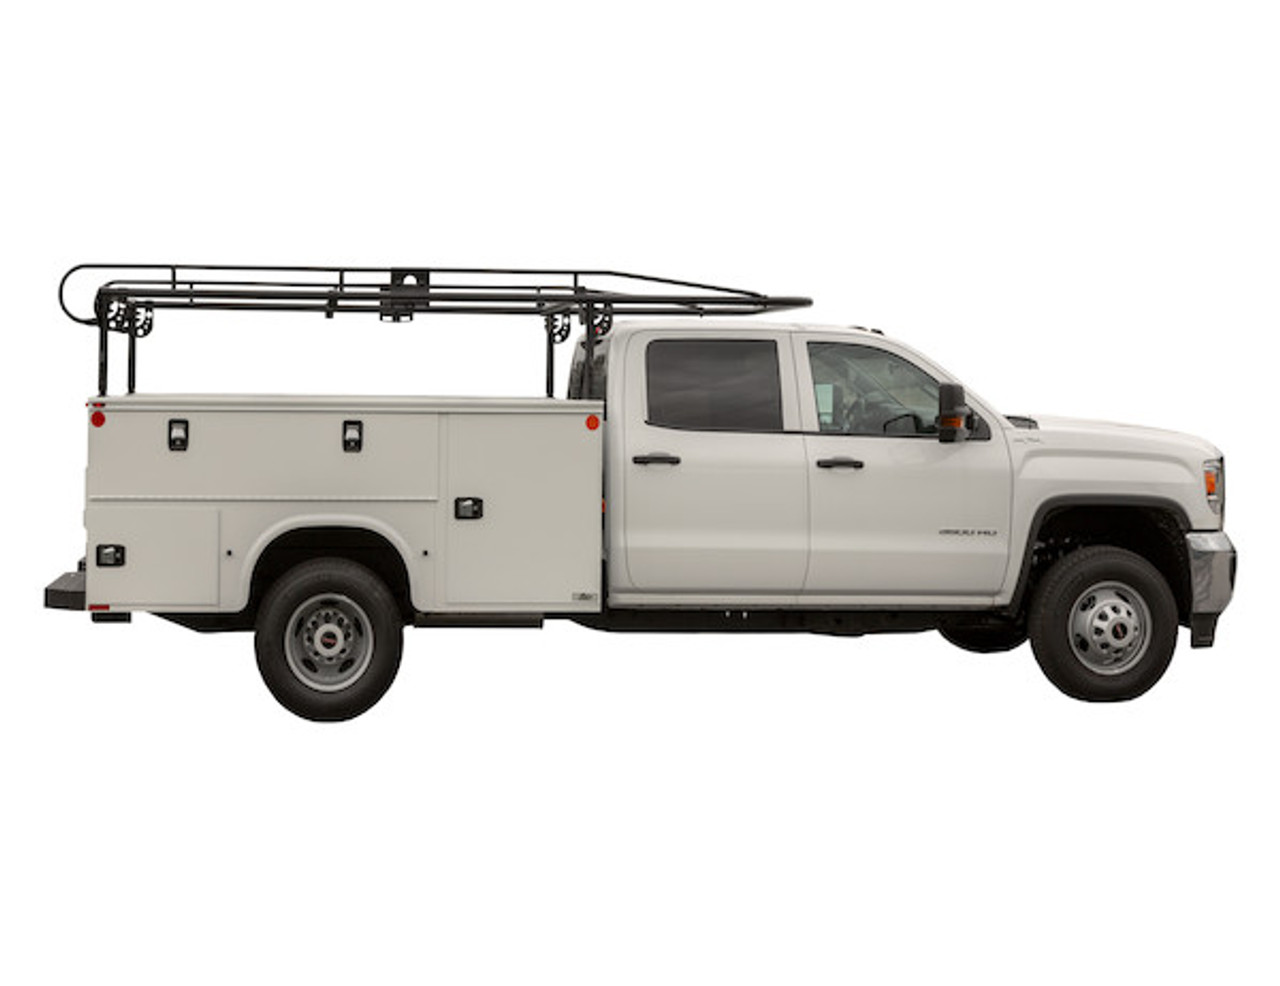 BUYERS 1501250 13-1/2 Foot Black Service Body Ladder Rack for Movers, Contractors, Construction, Painters Picture # 9